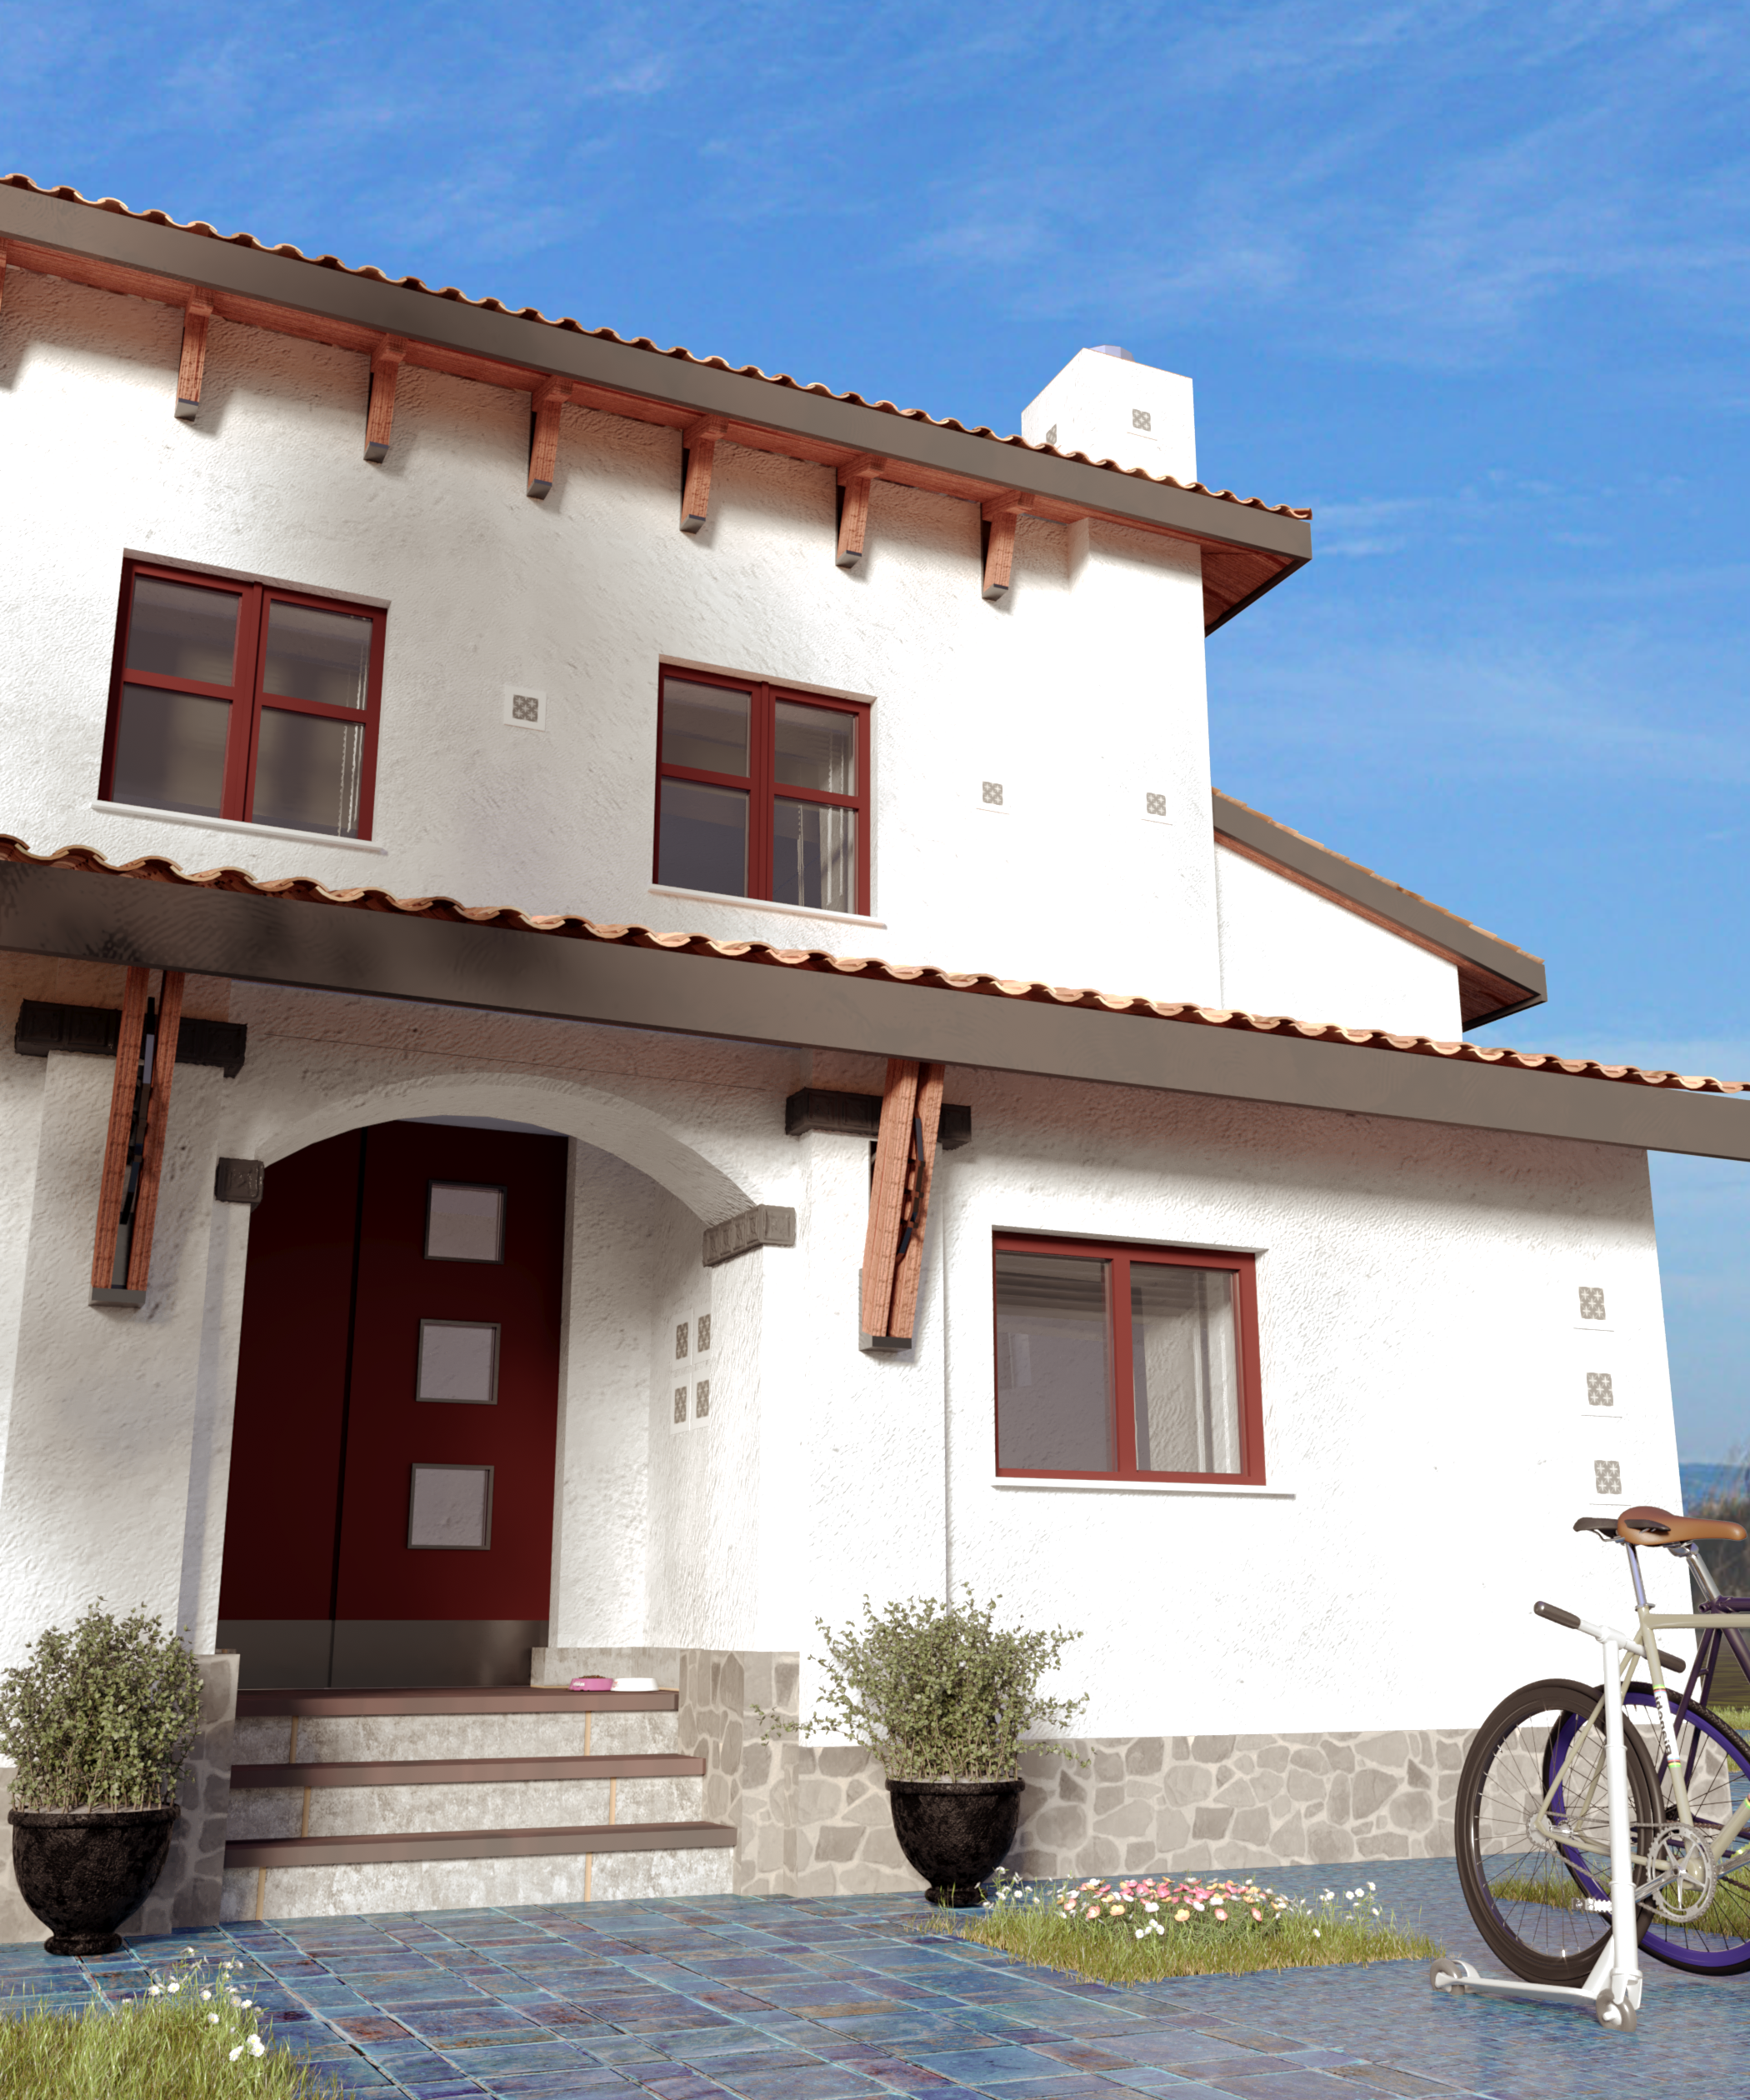 Mediterranean style house project with terraces with panoramic windows, view 3